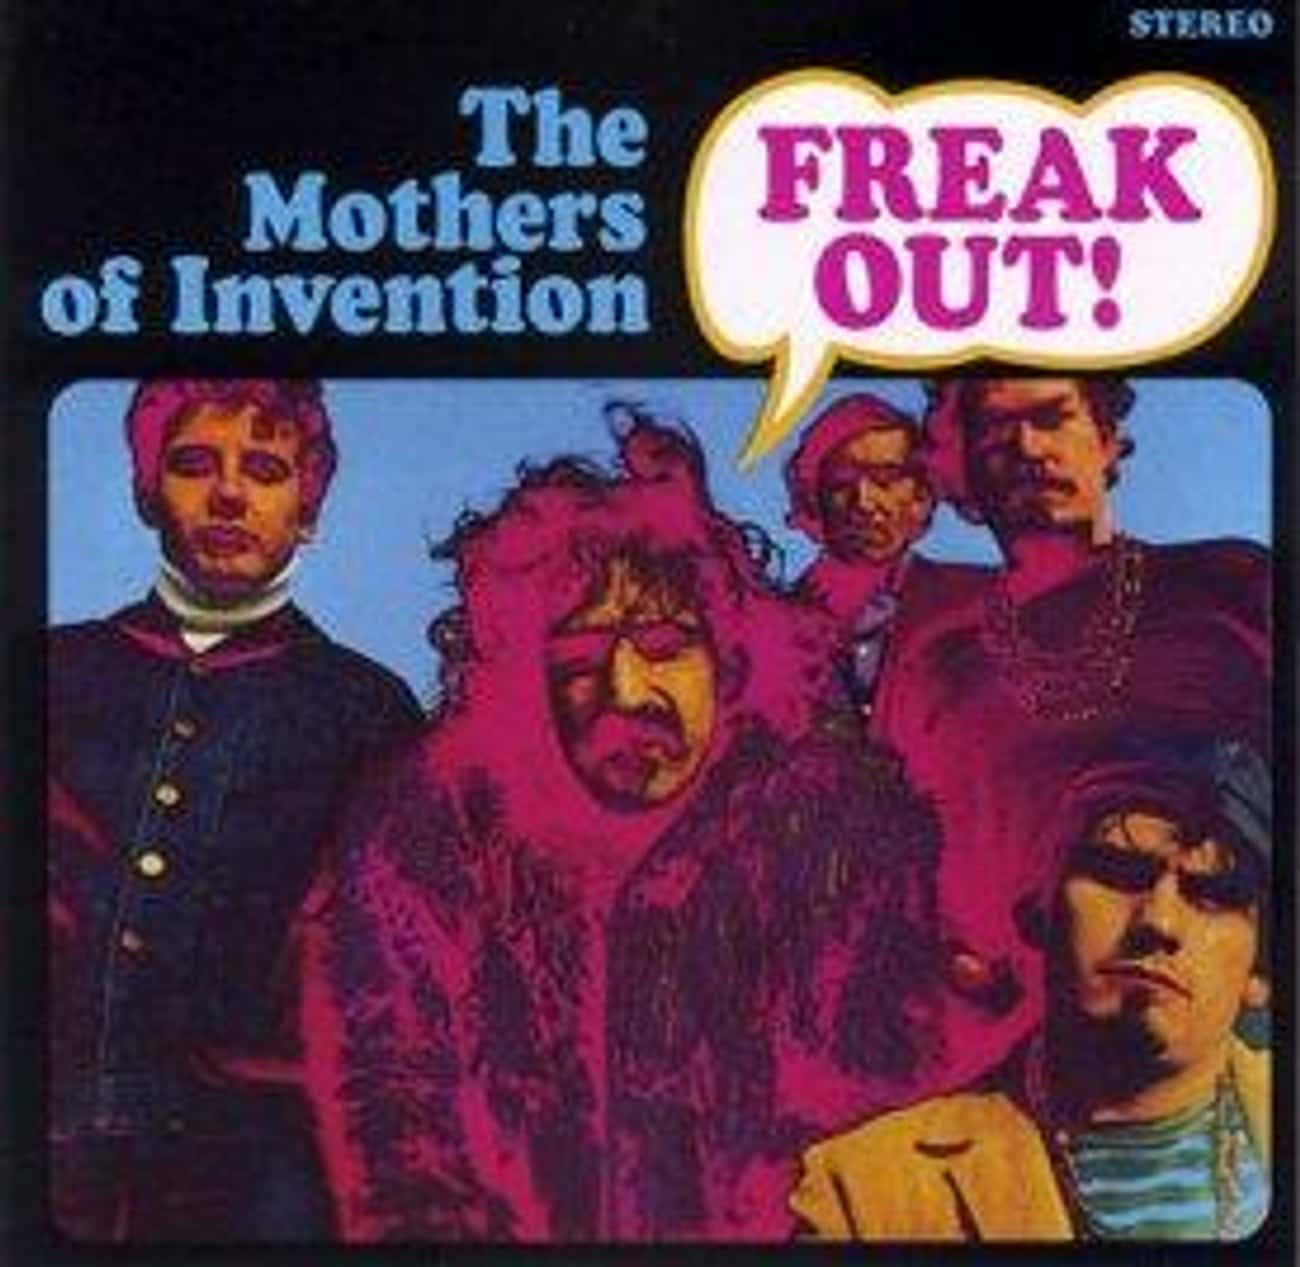 Freak Out! is listed (or ranked) 2 on the list The Best Mothers Of Invention Albums of All Time